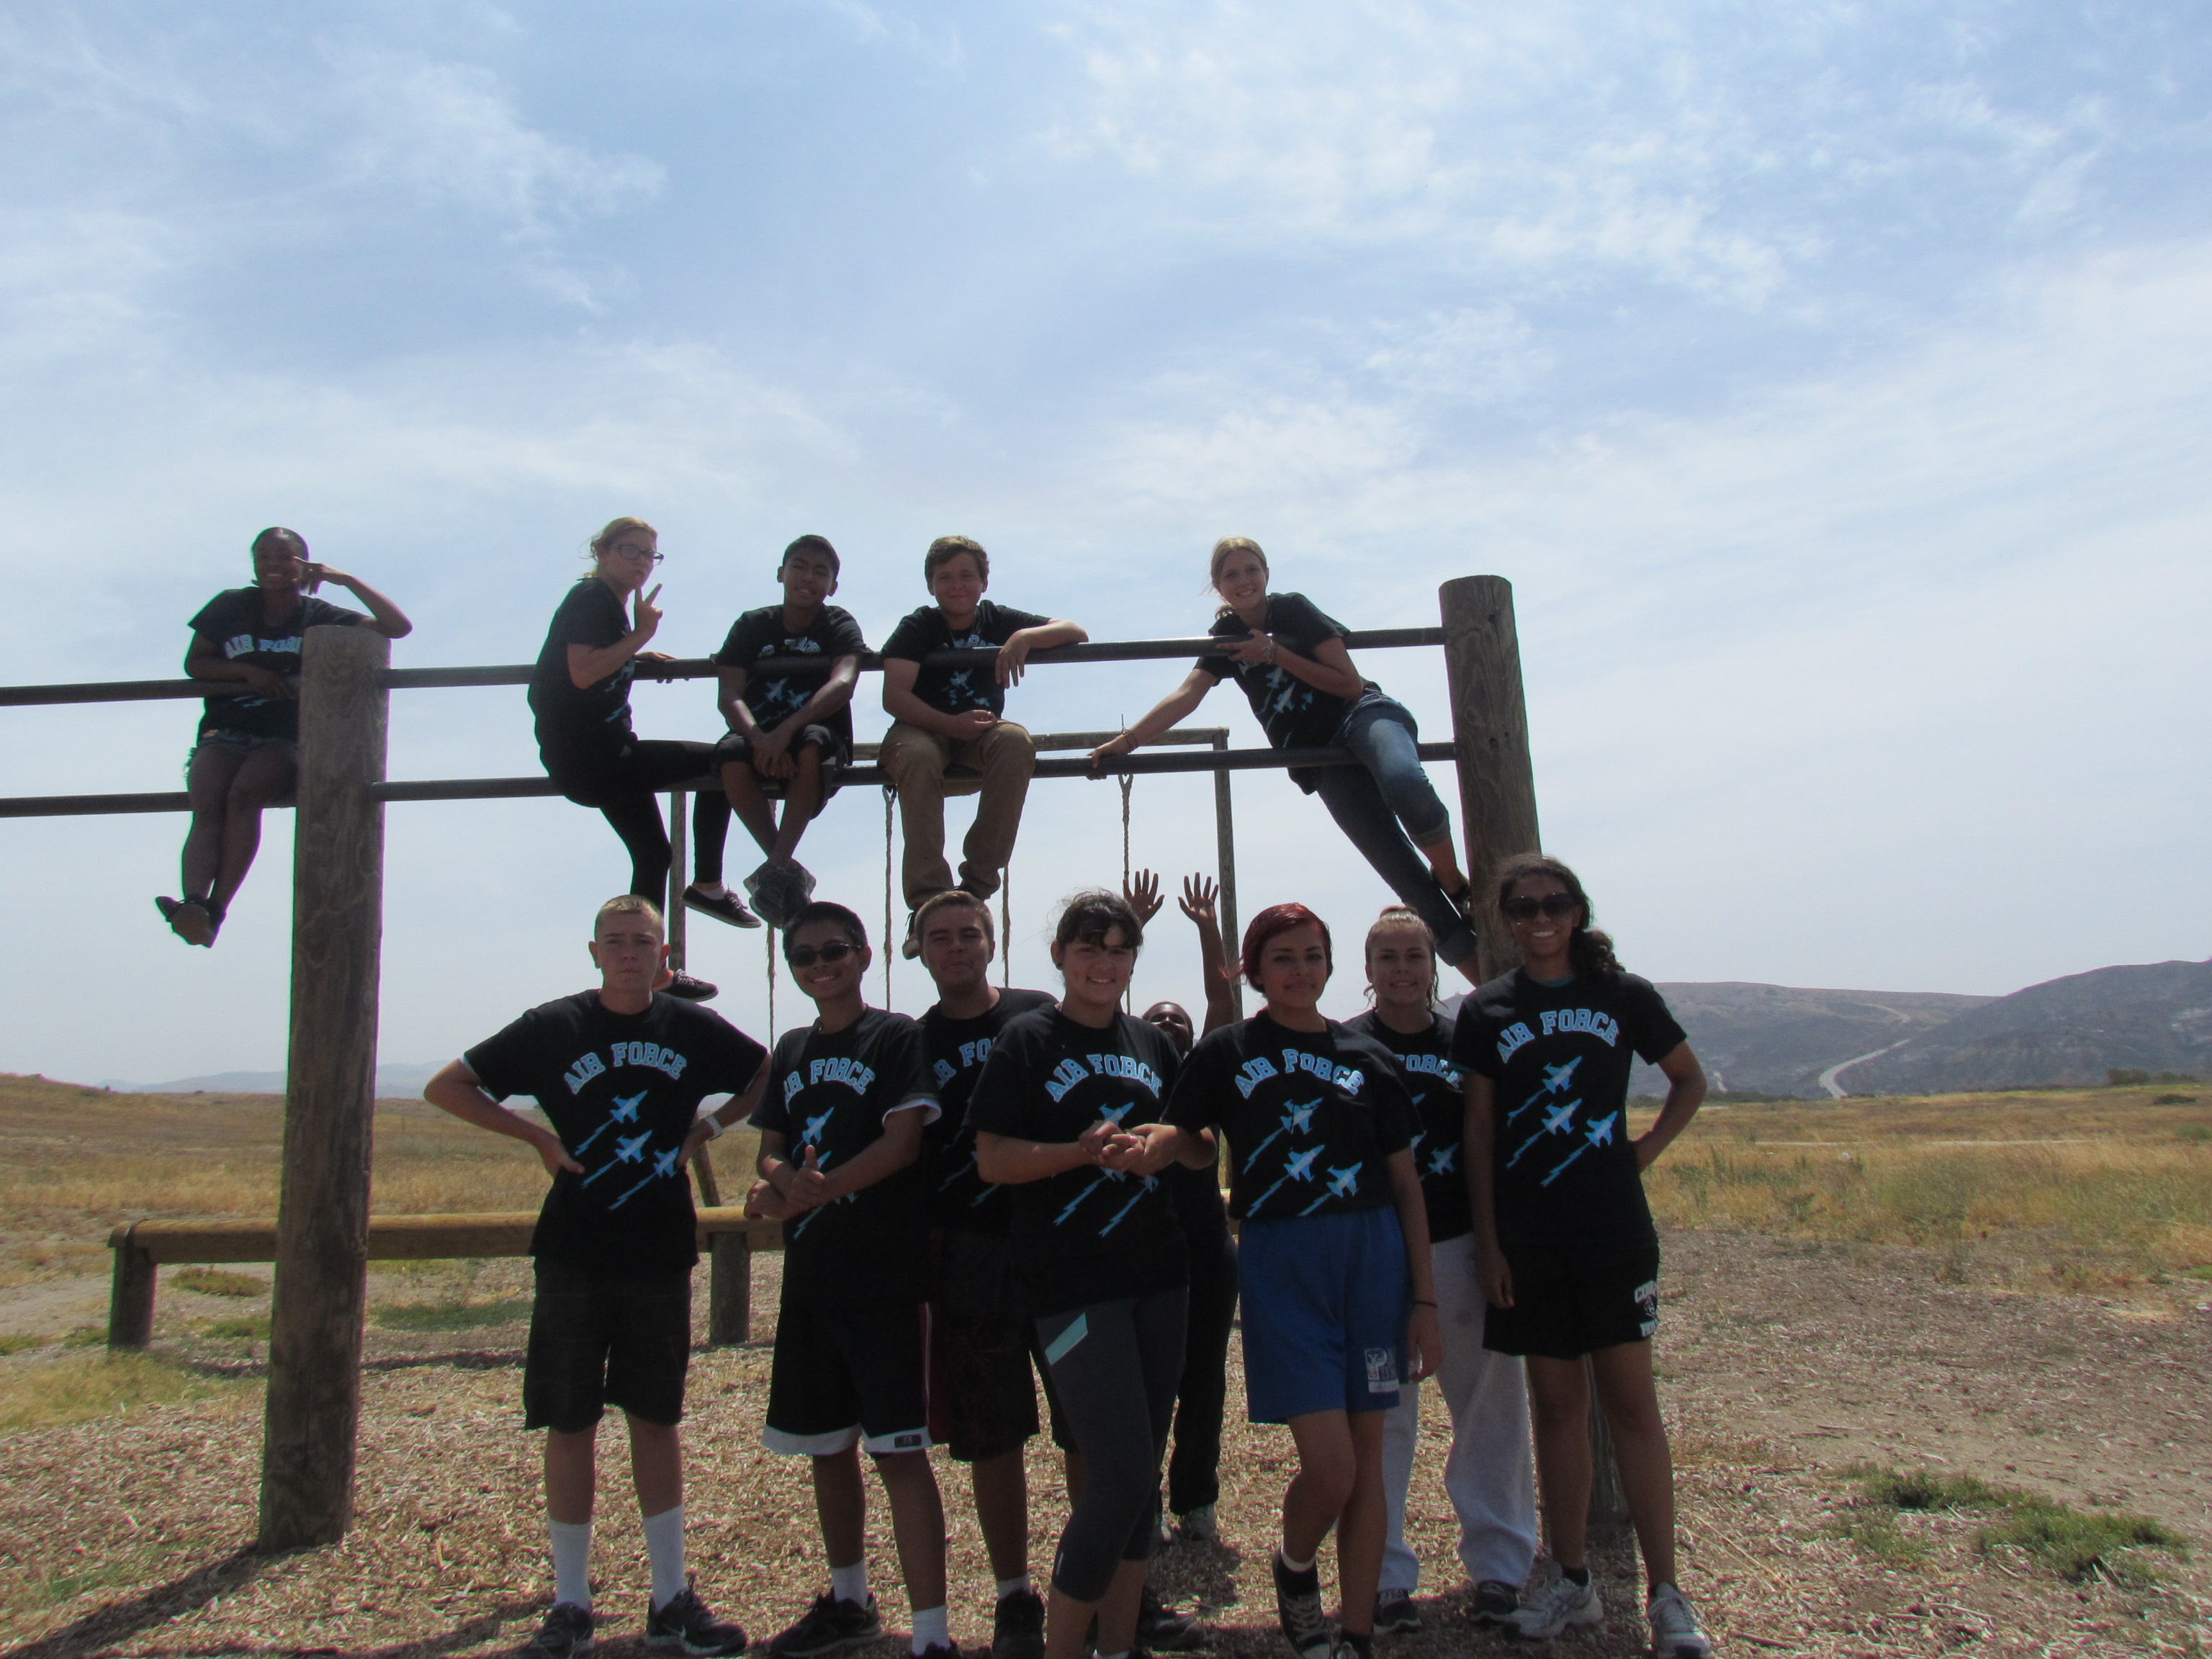 Shirt design course - Afjrotc In Action Obstacle Course Camp Pendleton T Shirt Photo